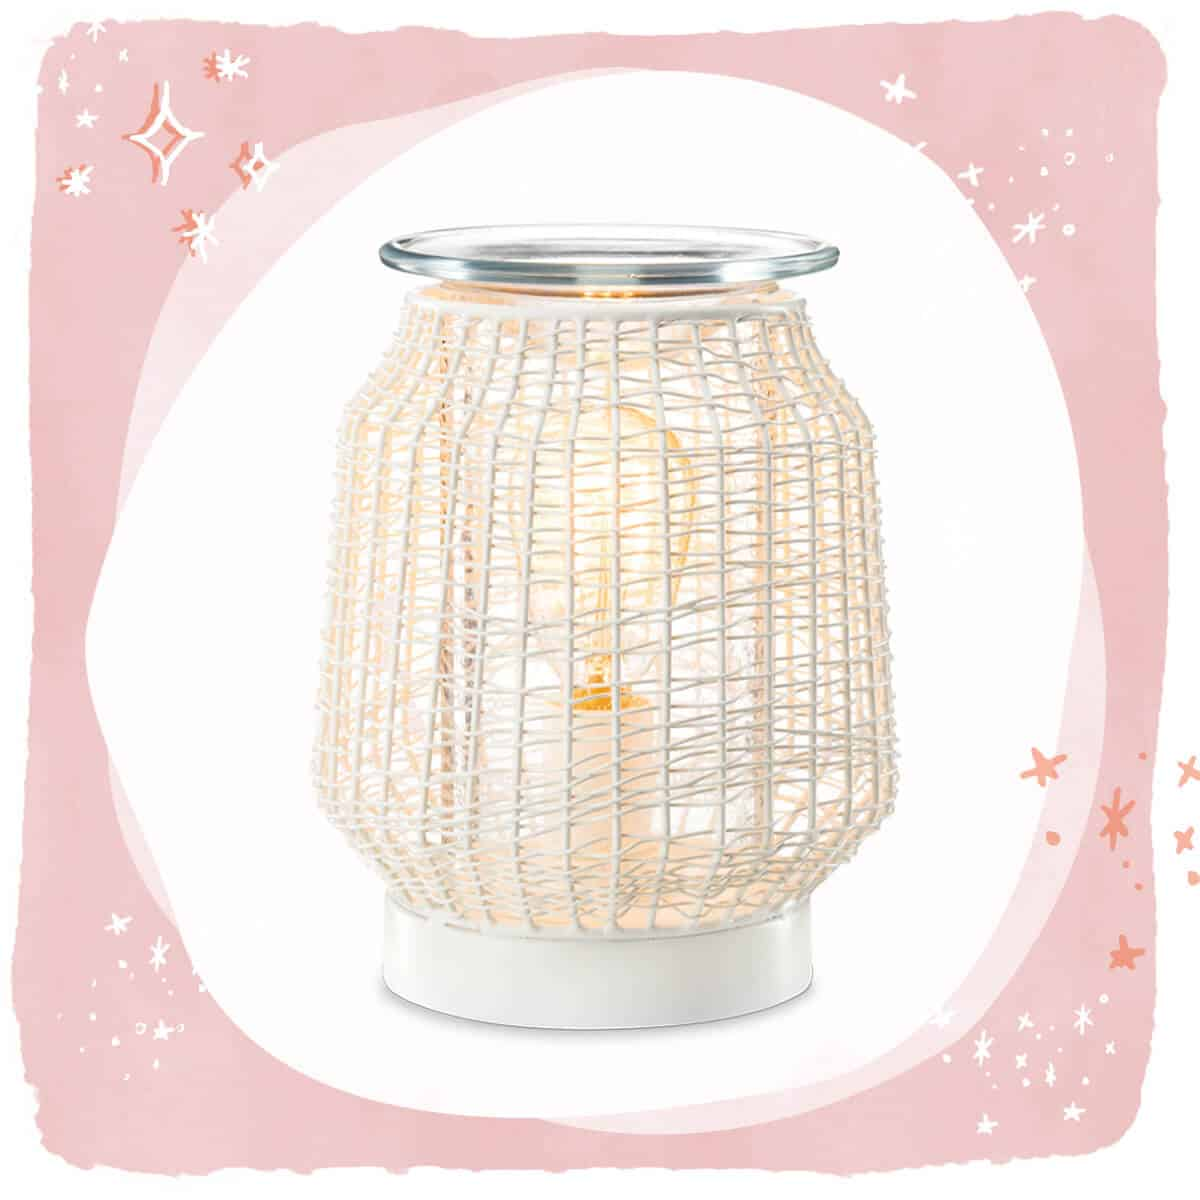 New Wicker Scentsy Warmer Scentsy 174 Buy Online Scentsy